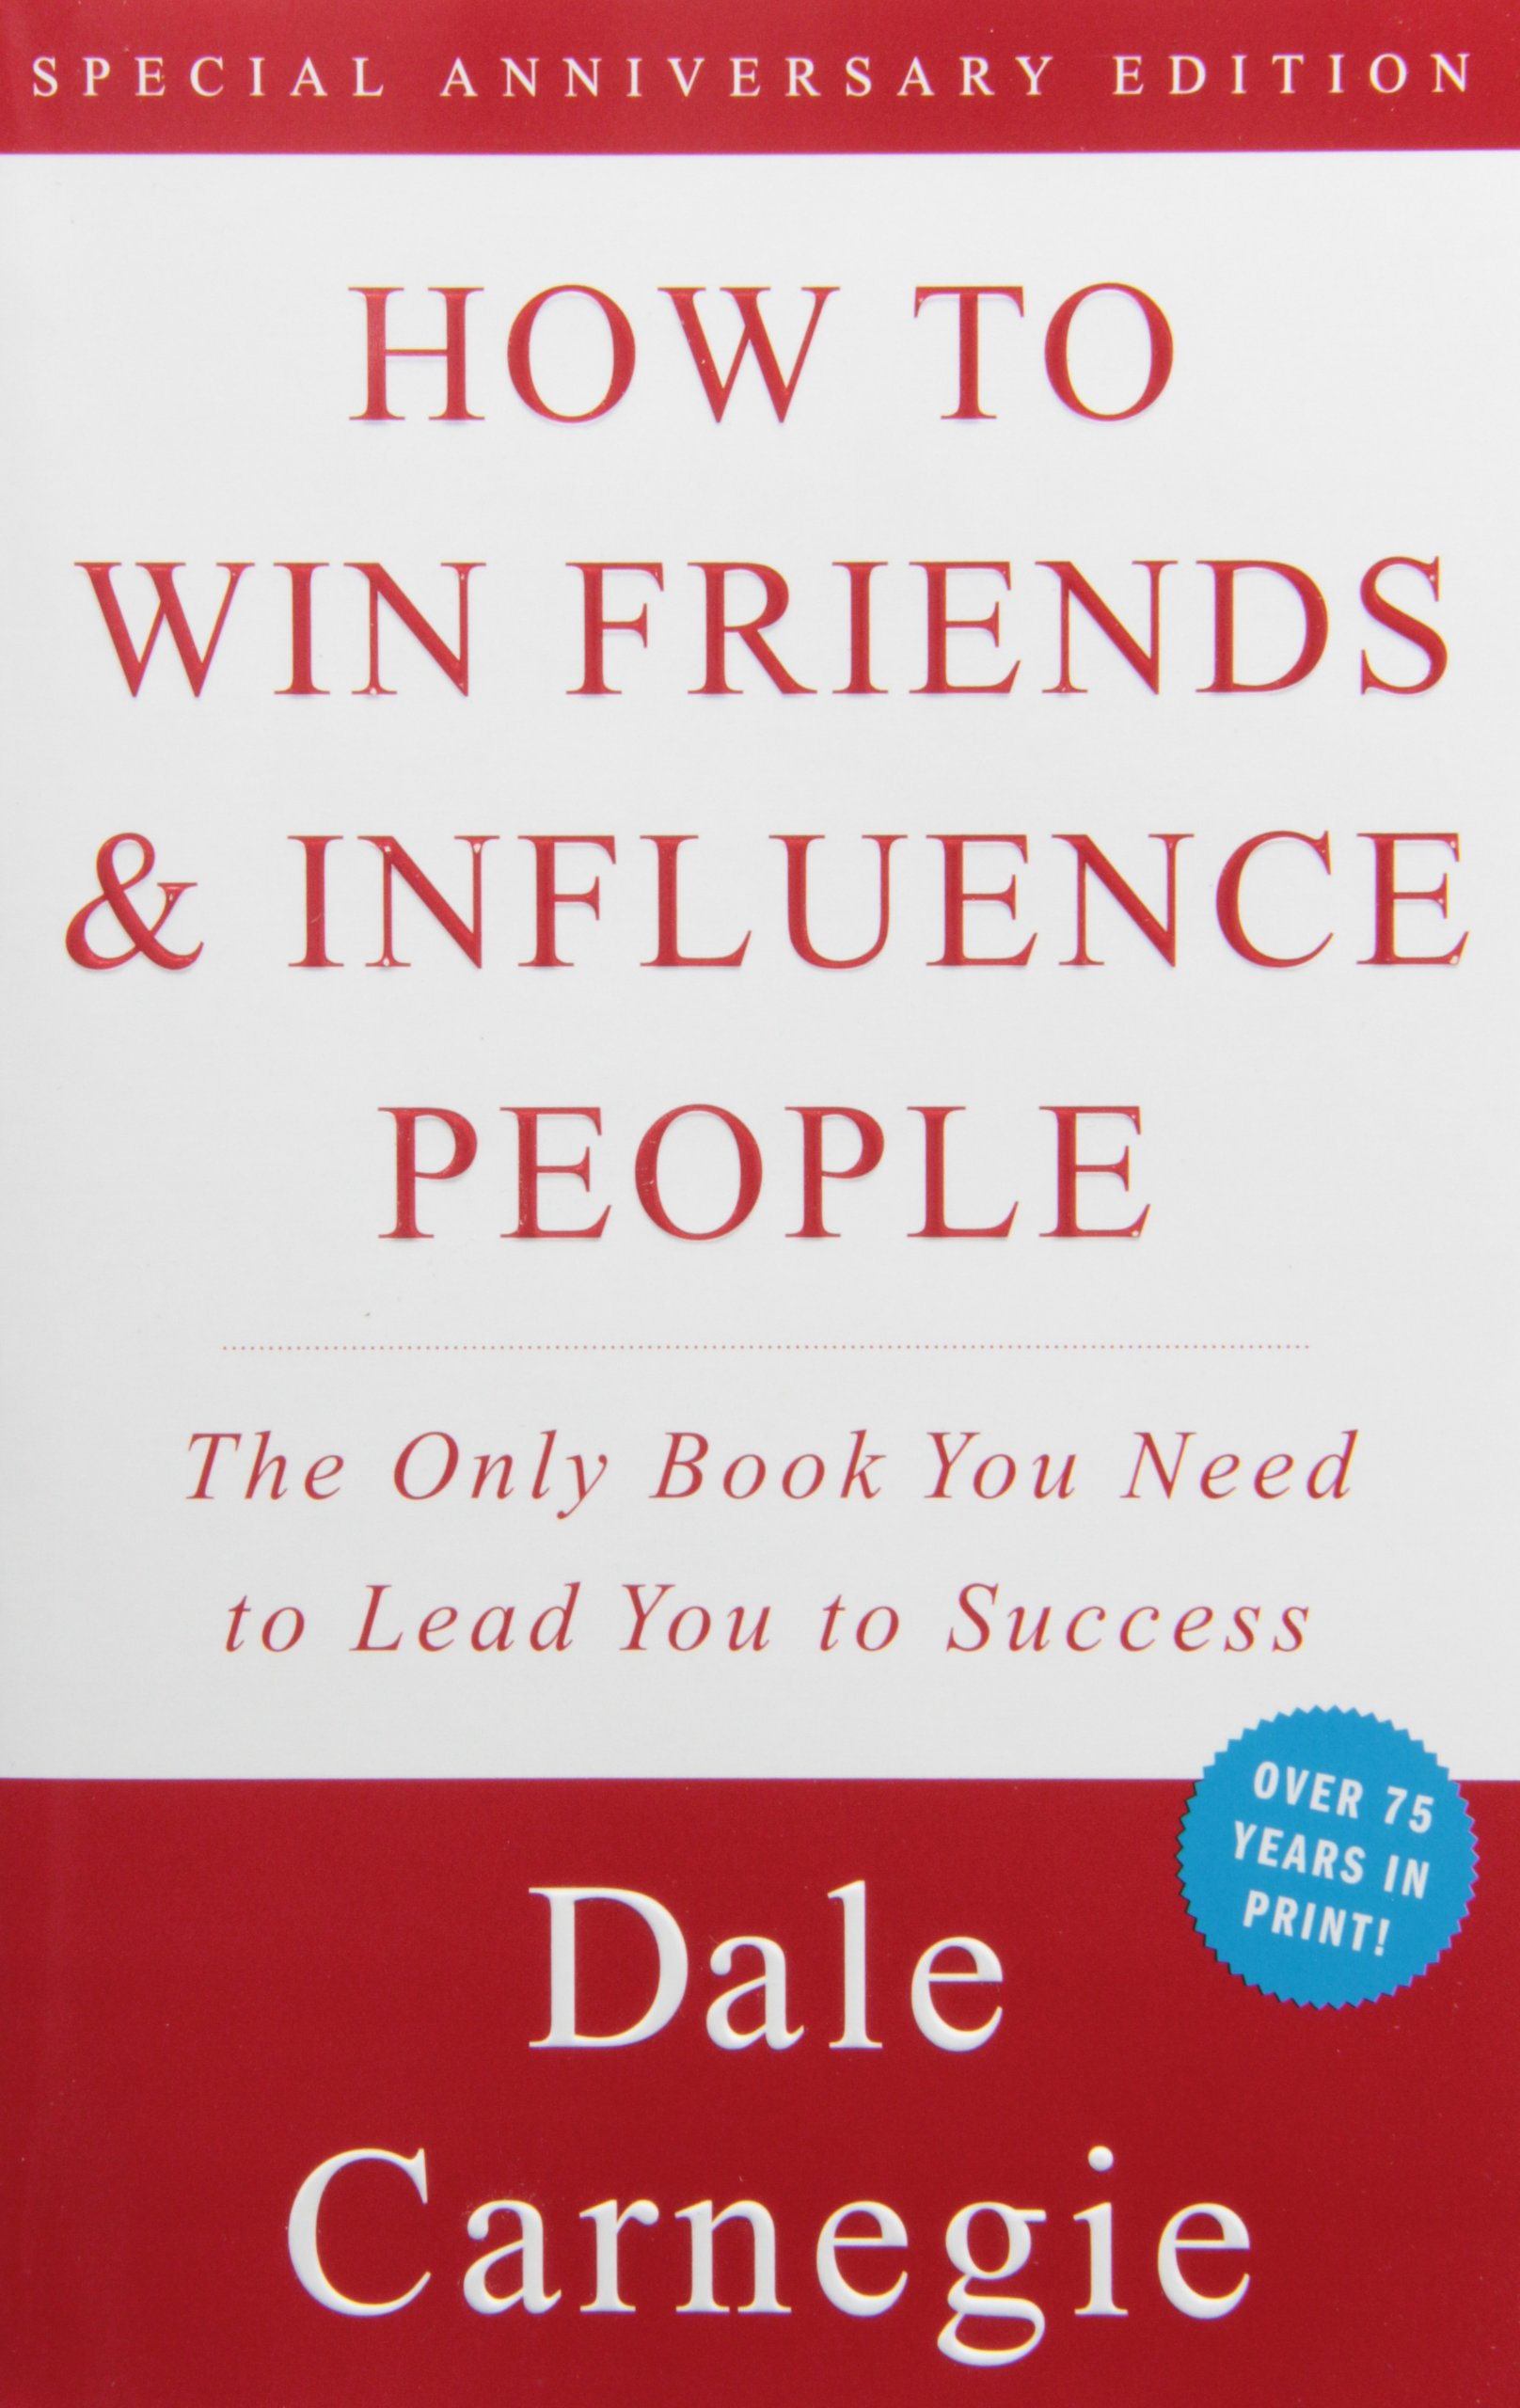 What Can Investors and Startups Learn from Dale Carnegie's Book?